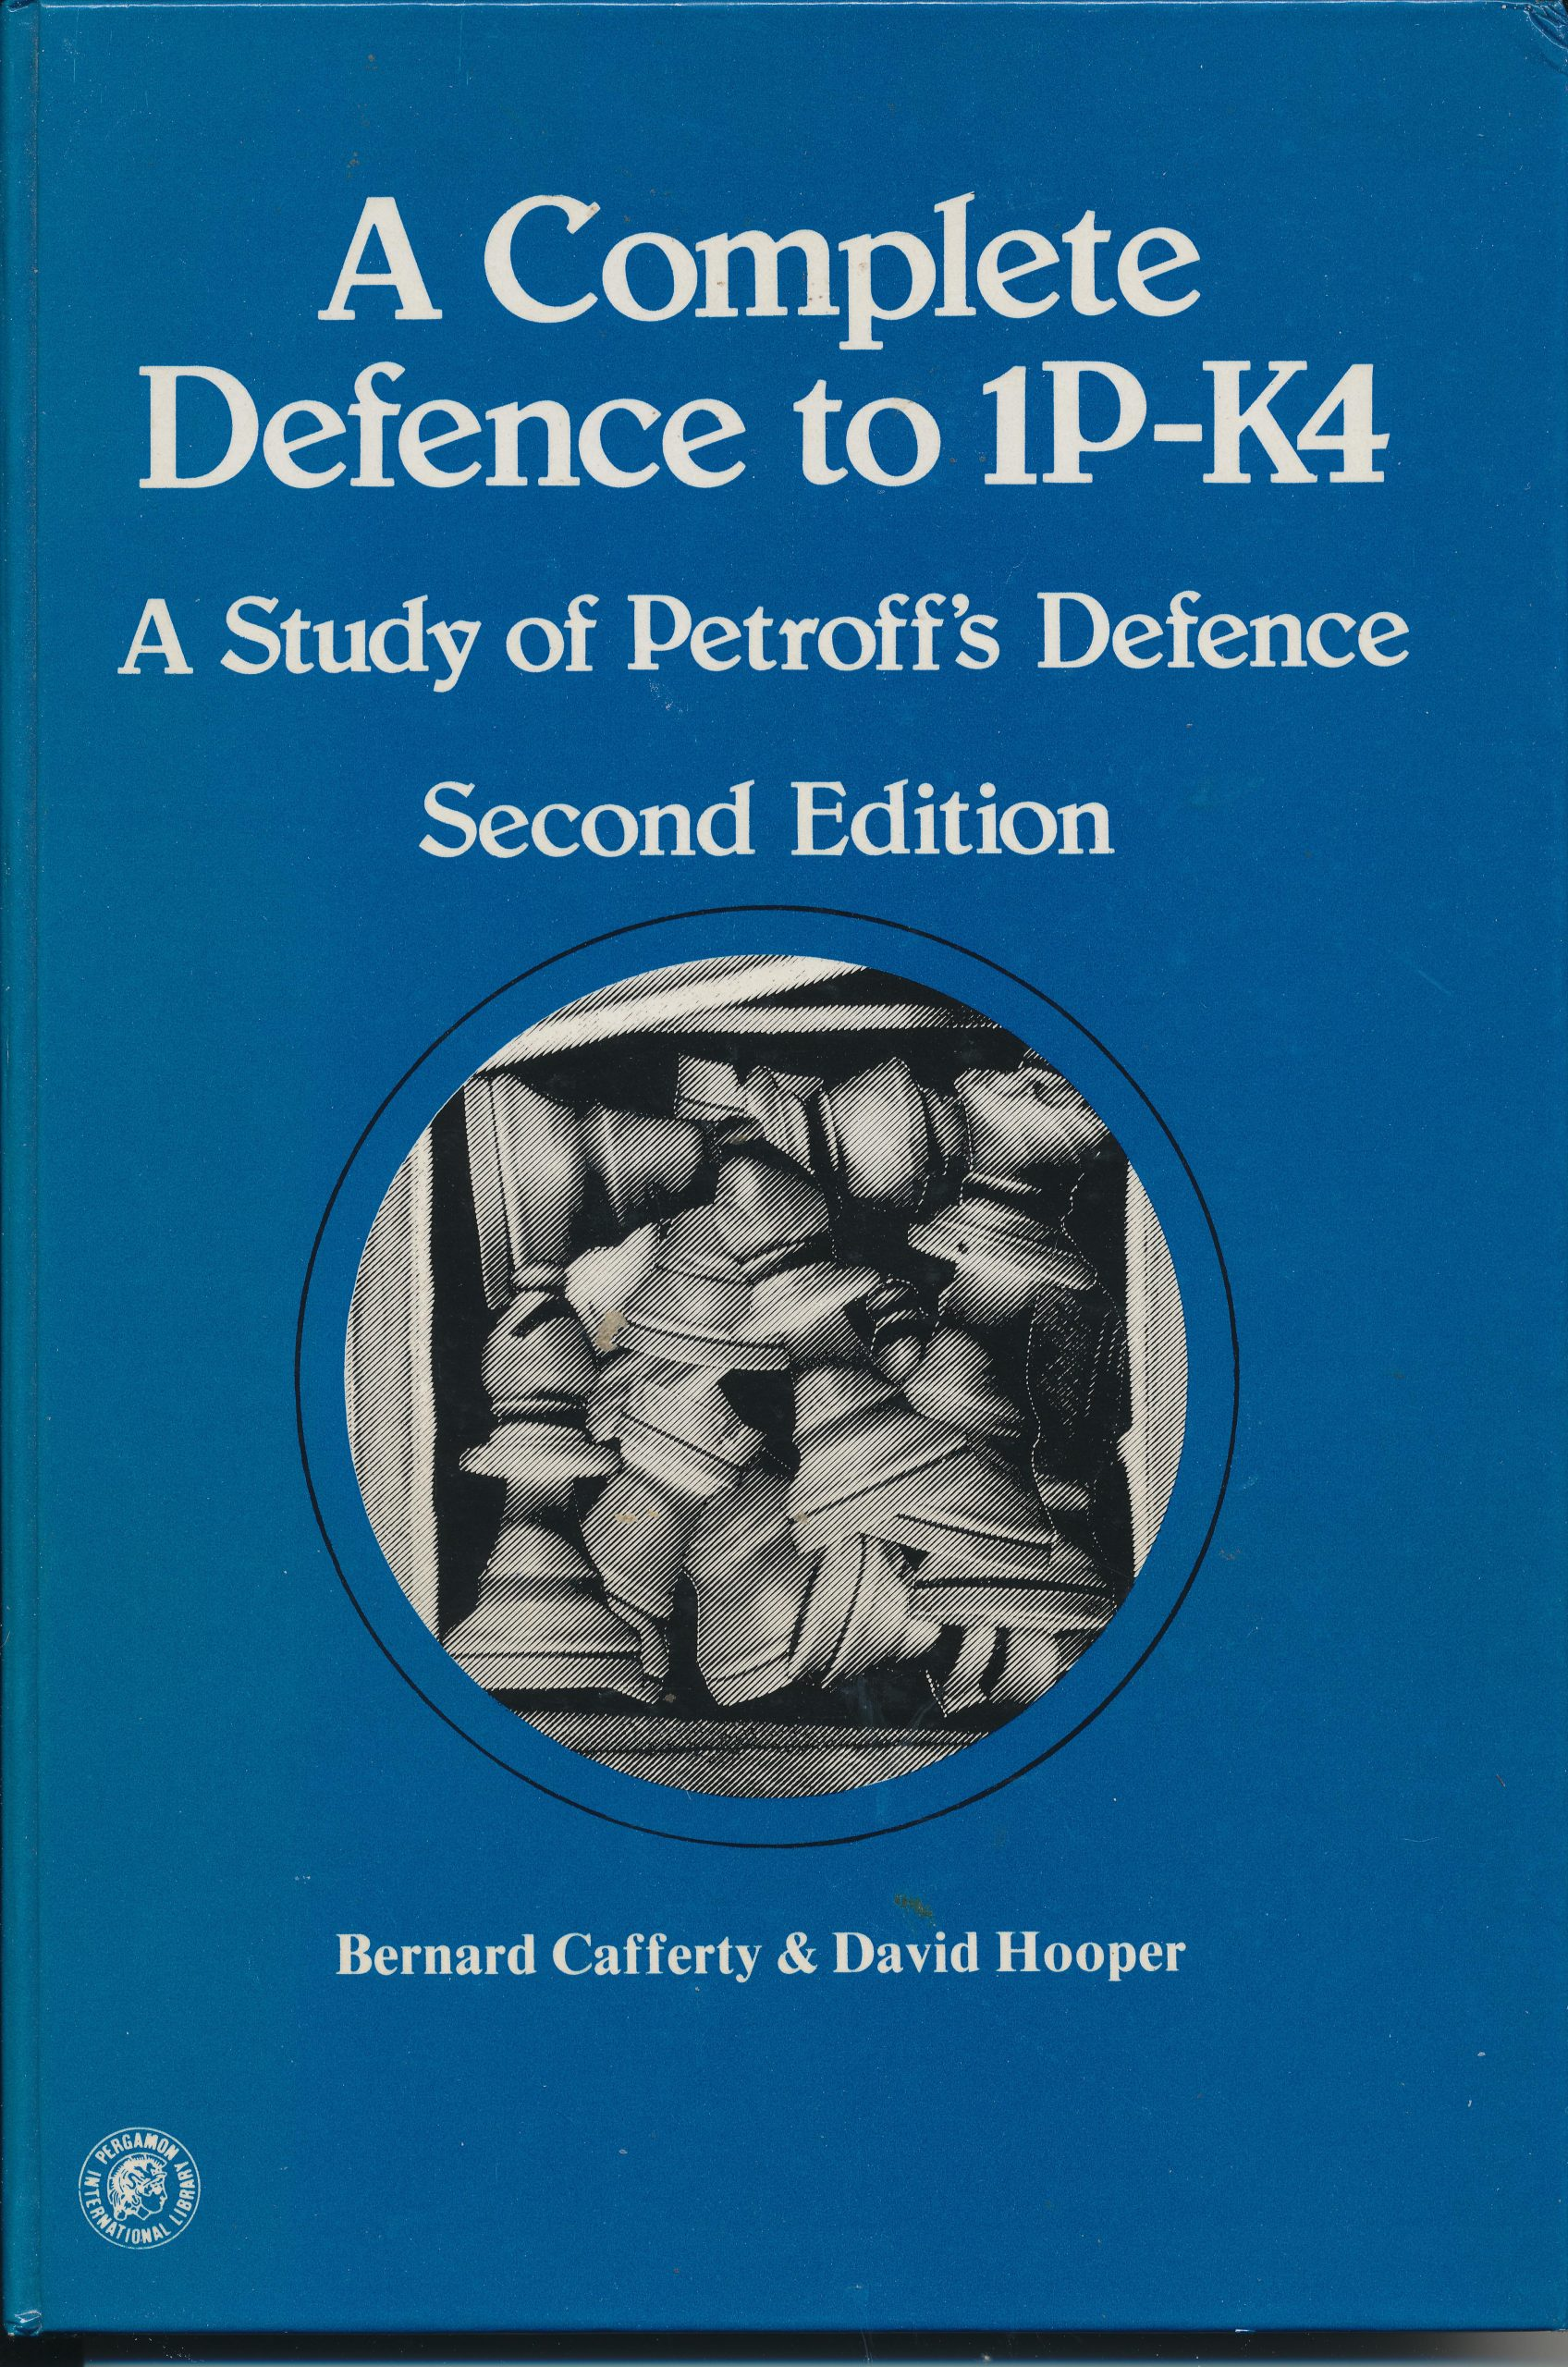 A Complete Defence to 1.P-K4 A Study of Petroff's Defence, Bernard Cafferty & David Hooper, Pergamon Press, 1967, ISBN 0 08 024089 5